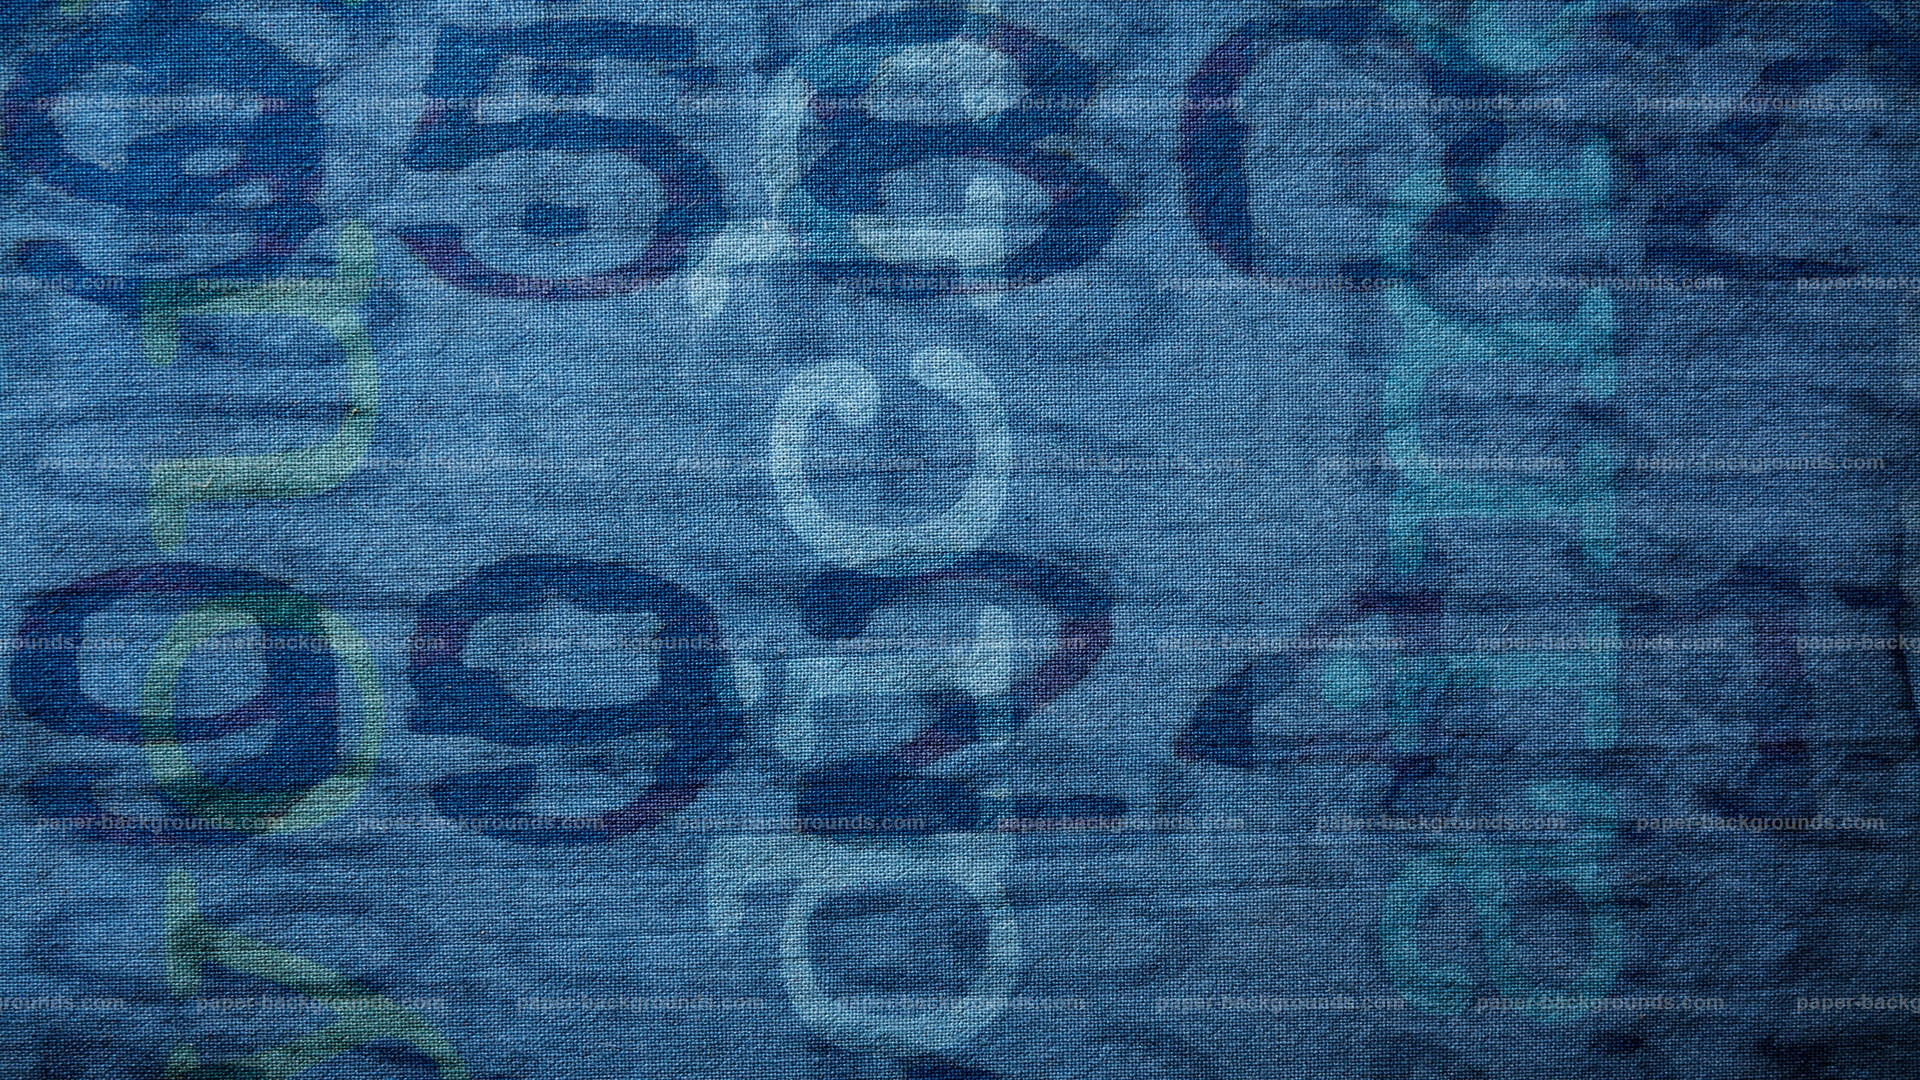 Blue Fabric Texture with Text HD